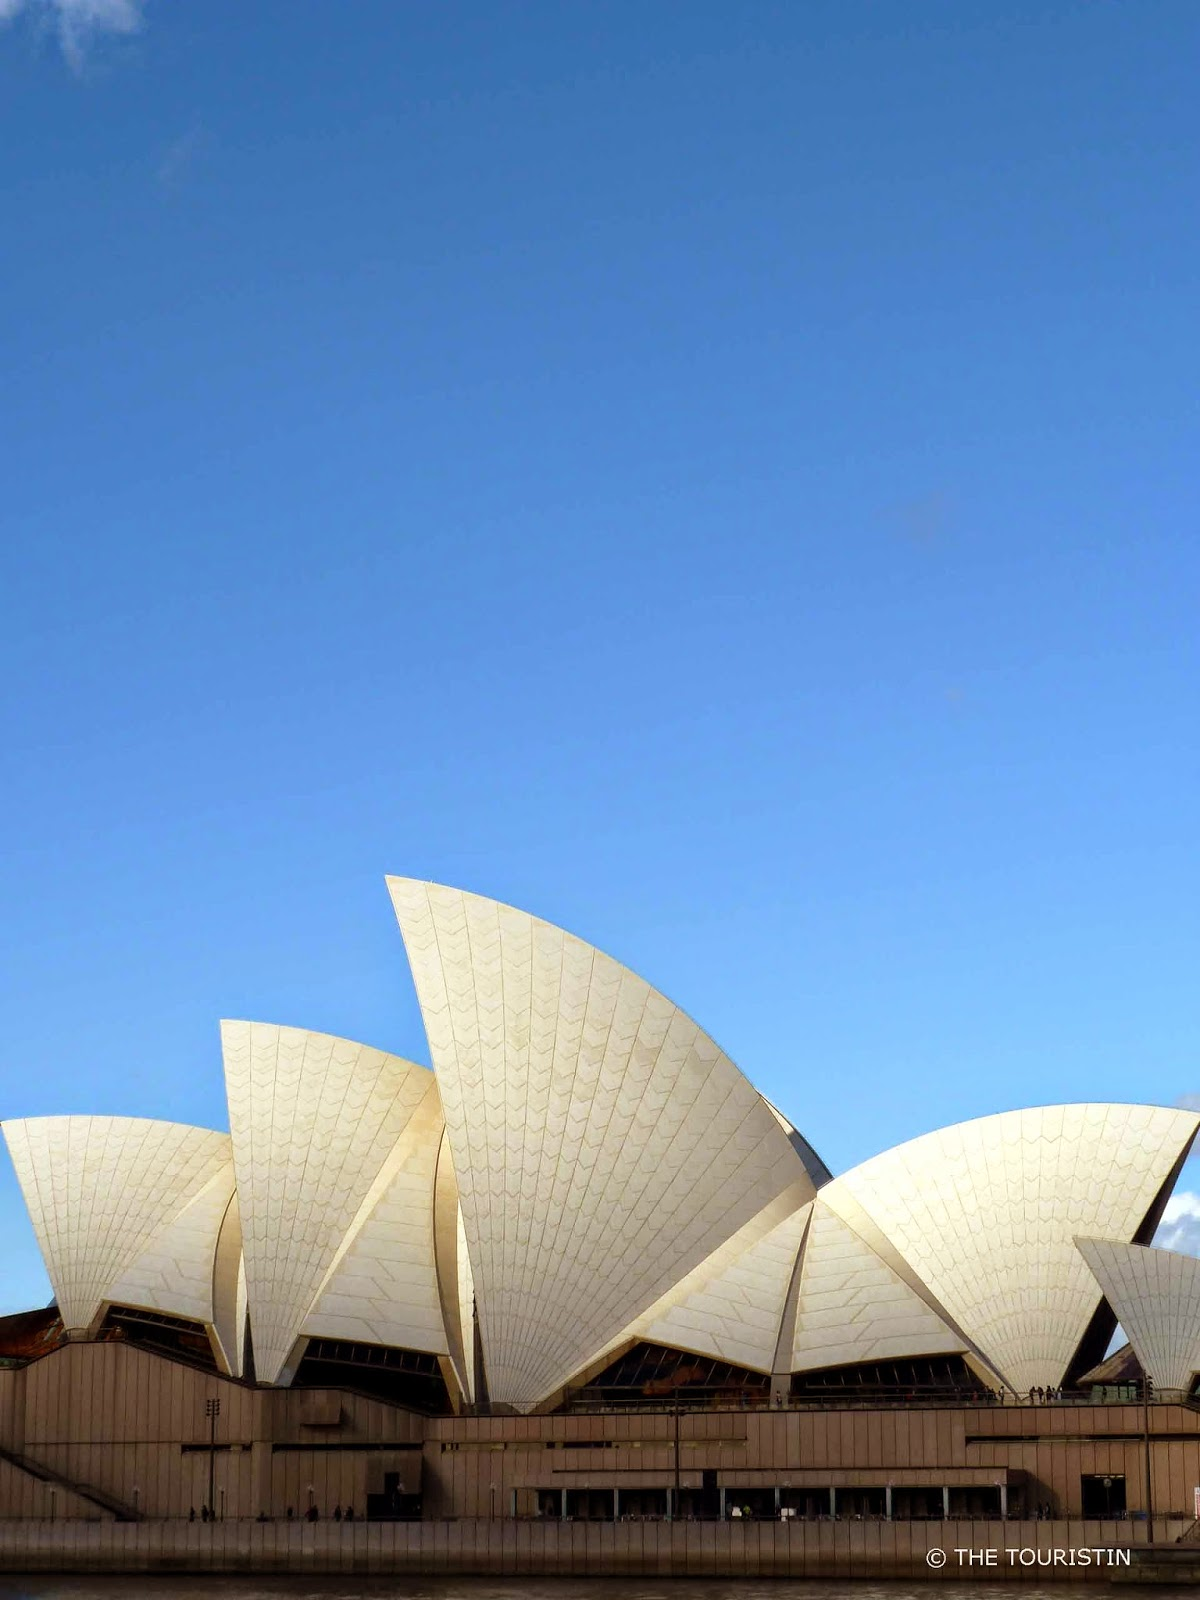 The glossy white and matte cream tiled and decorated sails of a performing arts centre (Sydney Opera House) under a big blue sky.